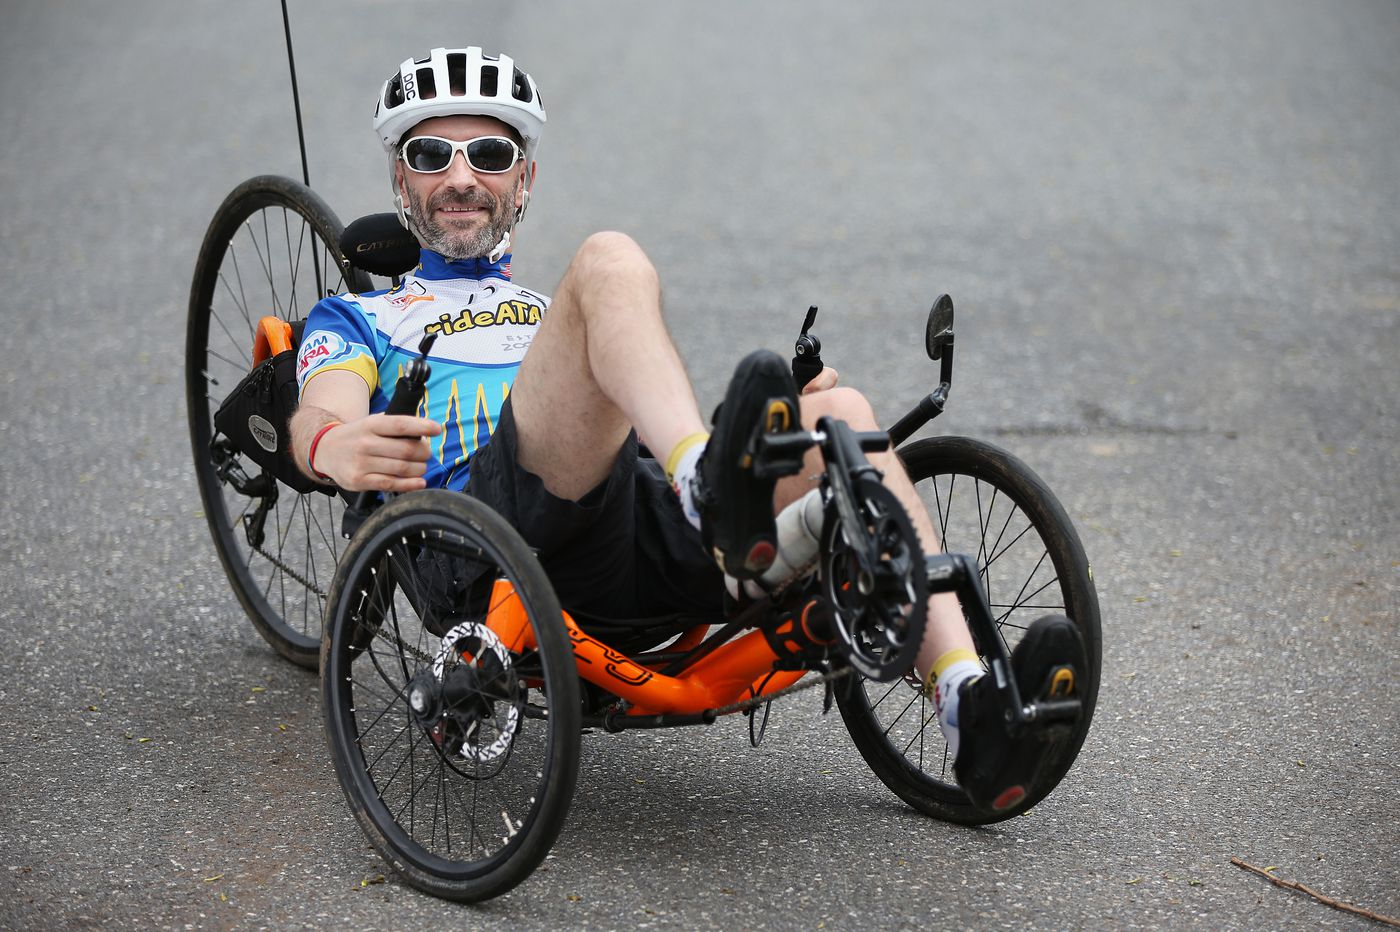 This man got a grave medical diagnosis. So what did he do? Ride his bike cross-country.